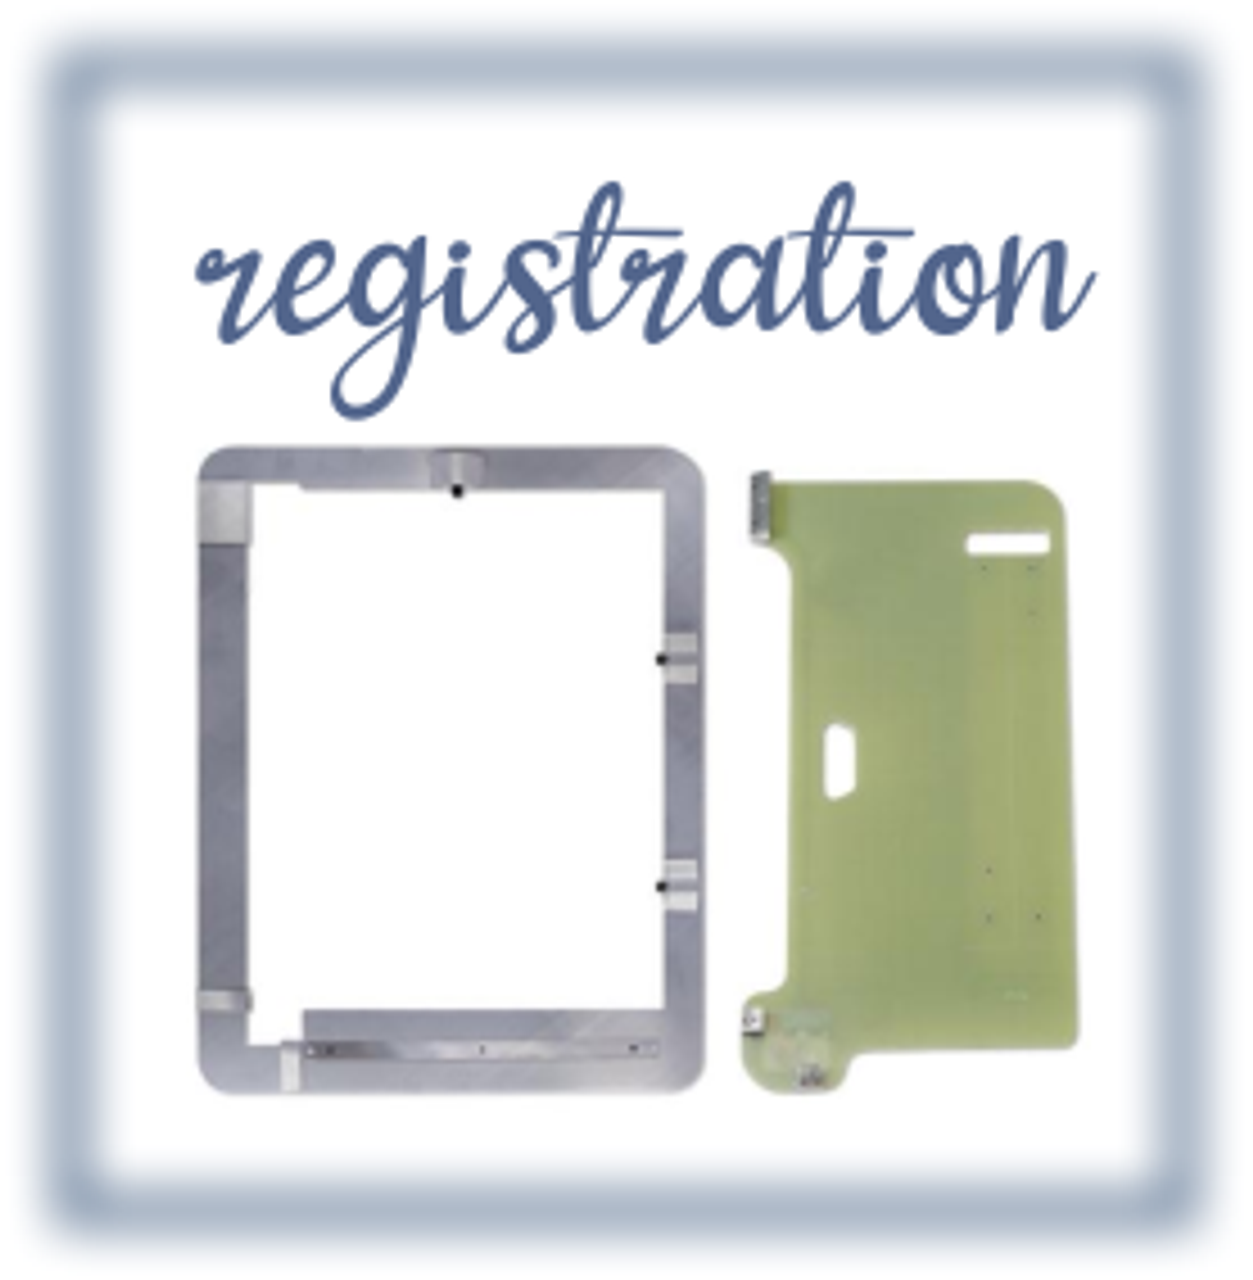 Registration Systems